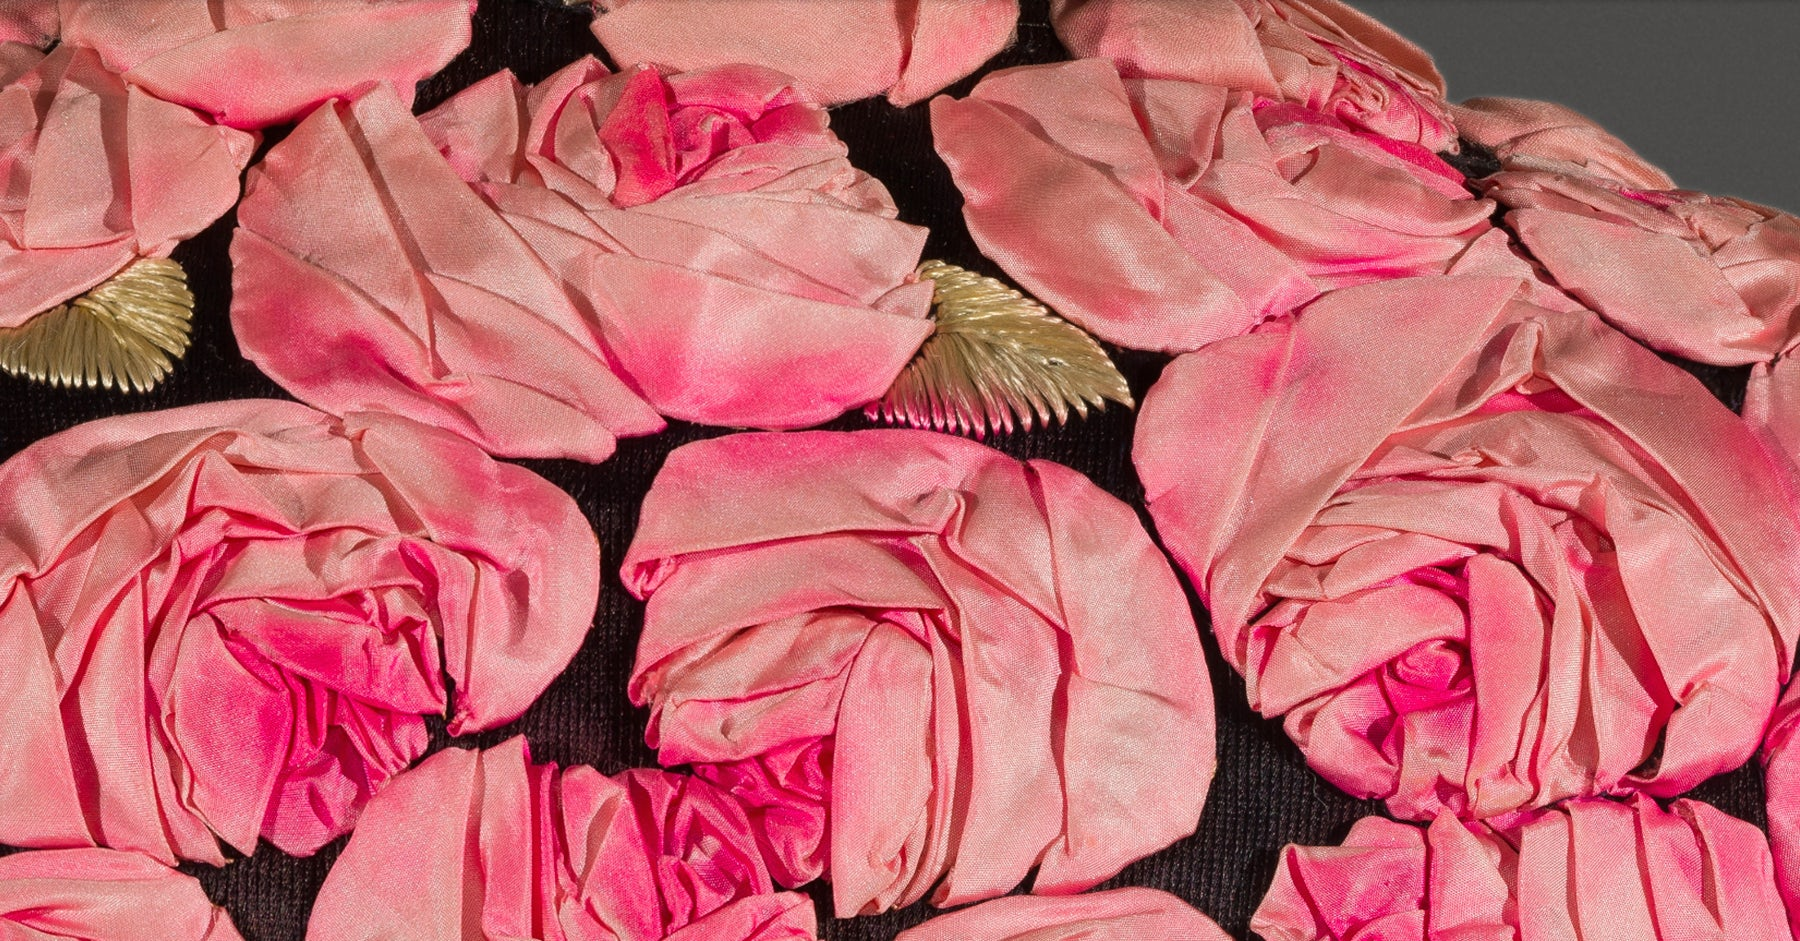 A Gigapixel image of a Schiaparelli evening coat from the Victoria & Albert Museum on Google Arts & Culture | Source: Google